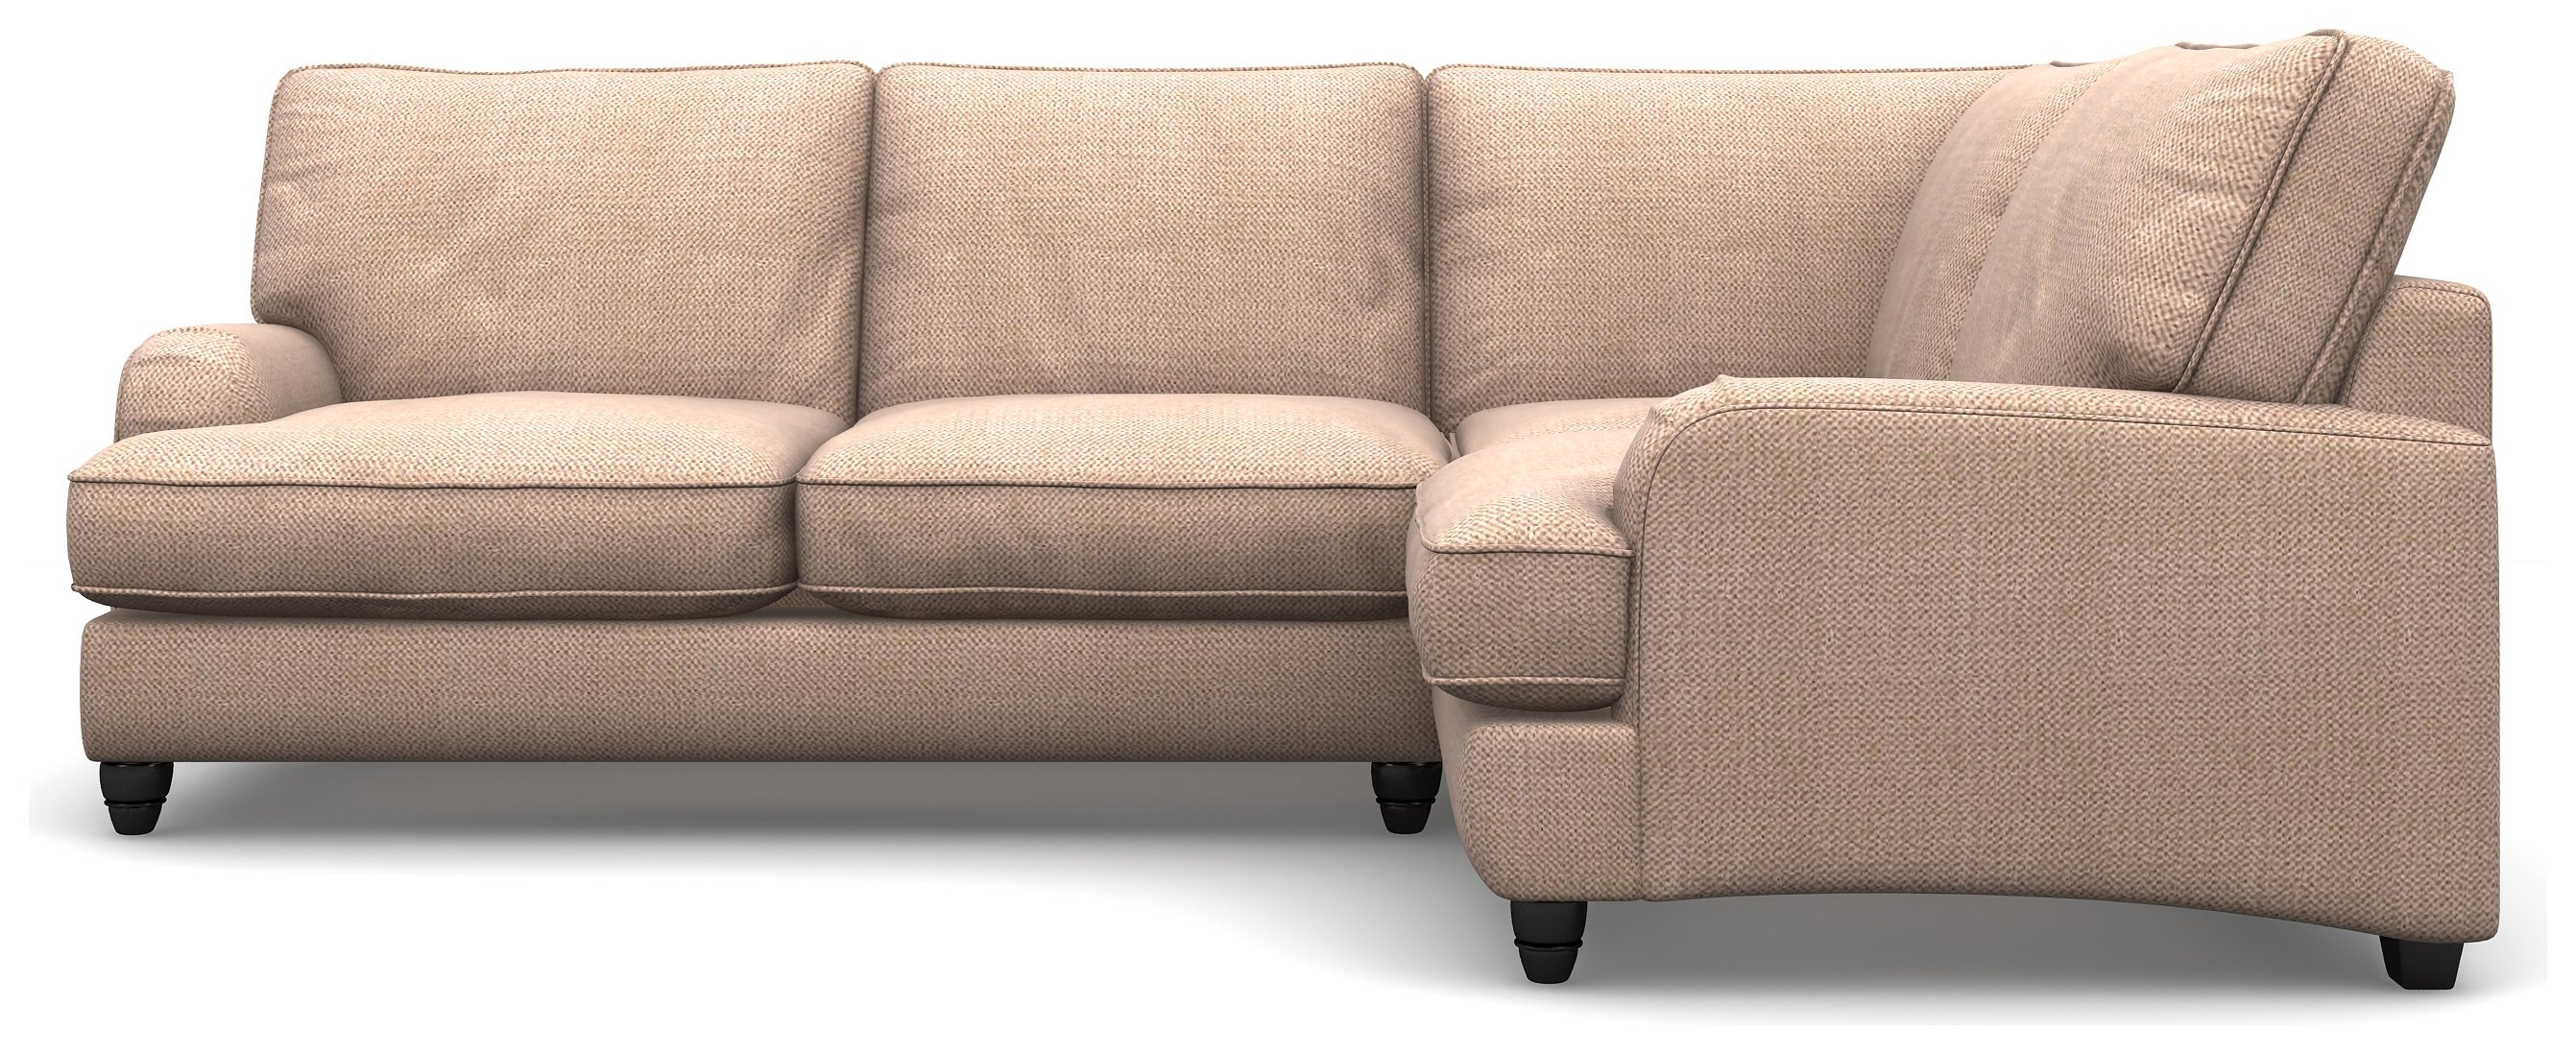 Create your own Heart of House Adeline Fabric Right Corner Sofa - Old Rose.